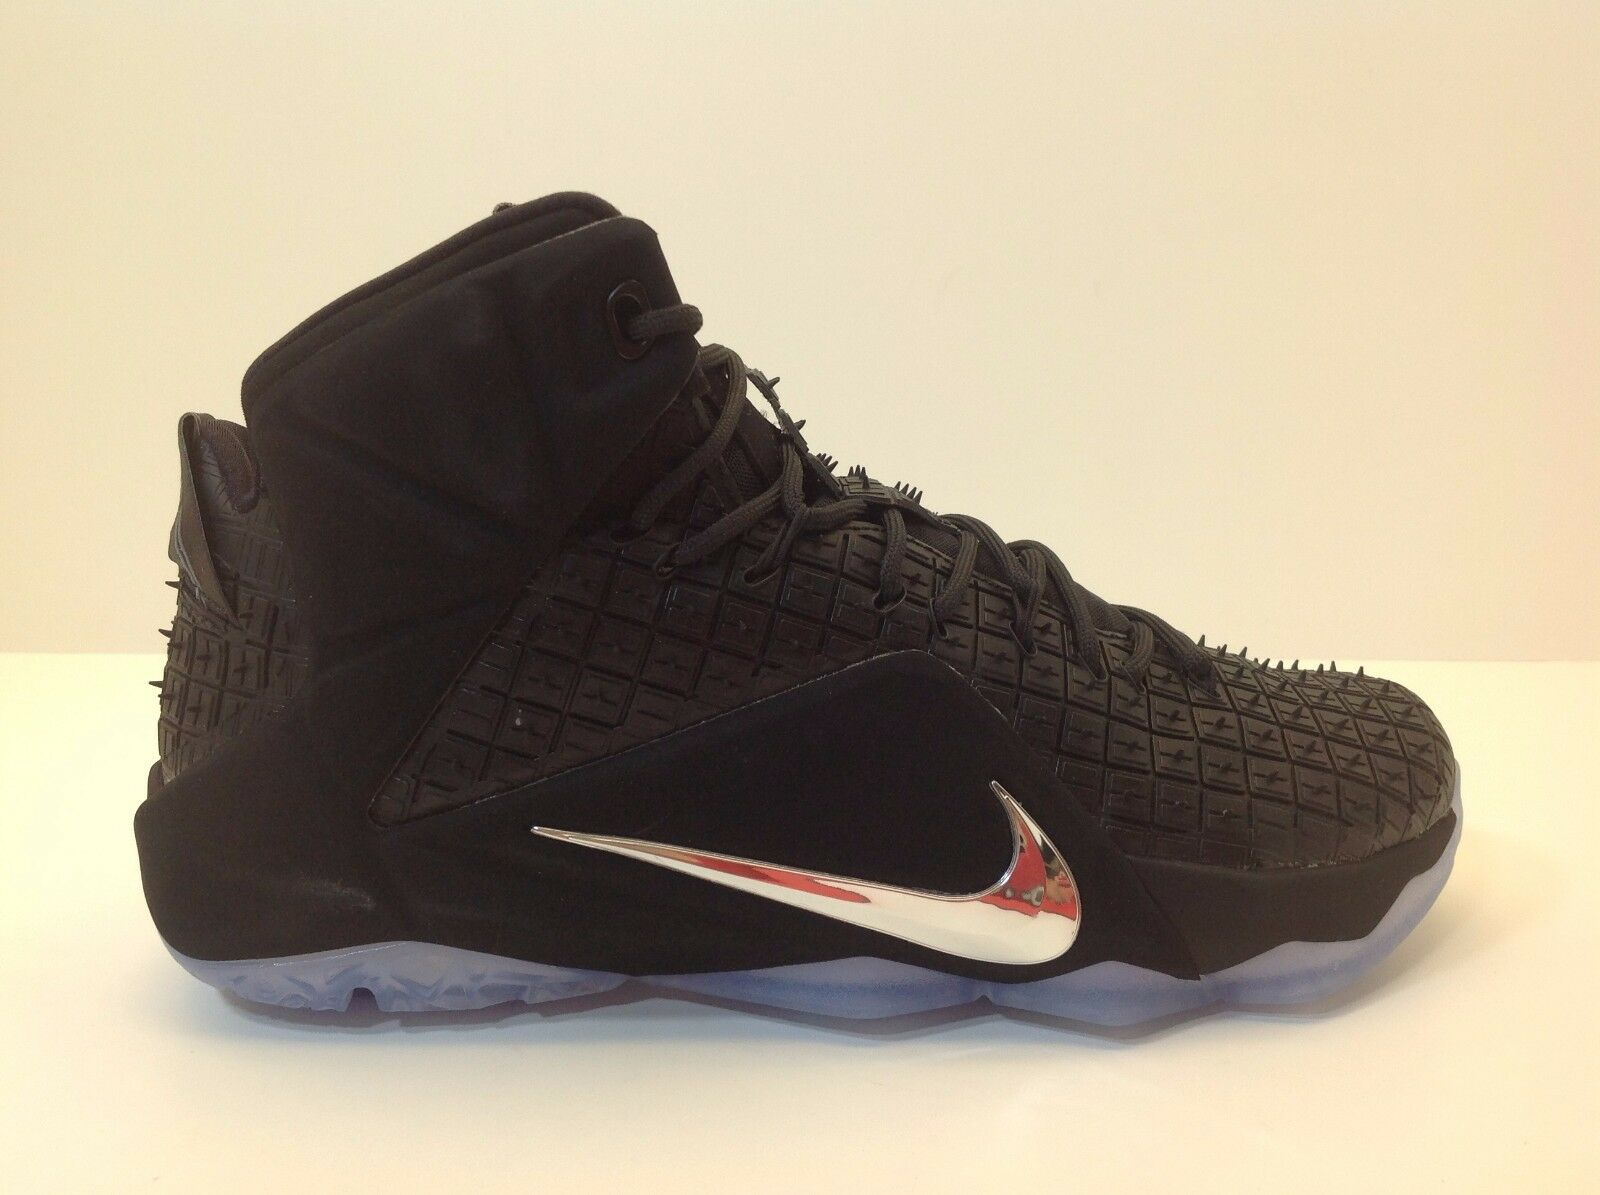 Nike Lebron XII EXT RC QS Men's Size 9 and 9.5 Shoes New in Box Black 744286 001